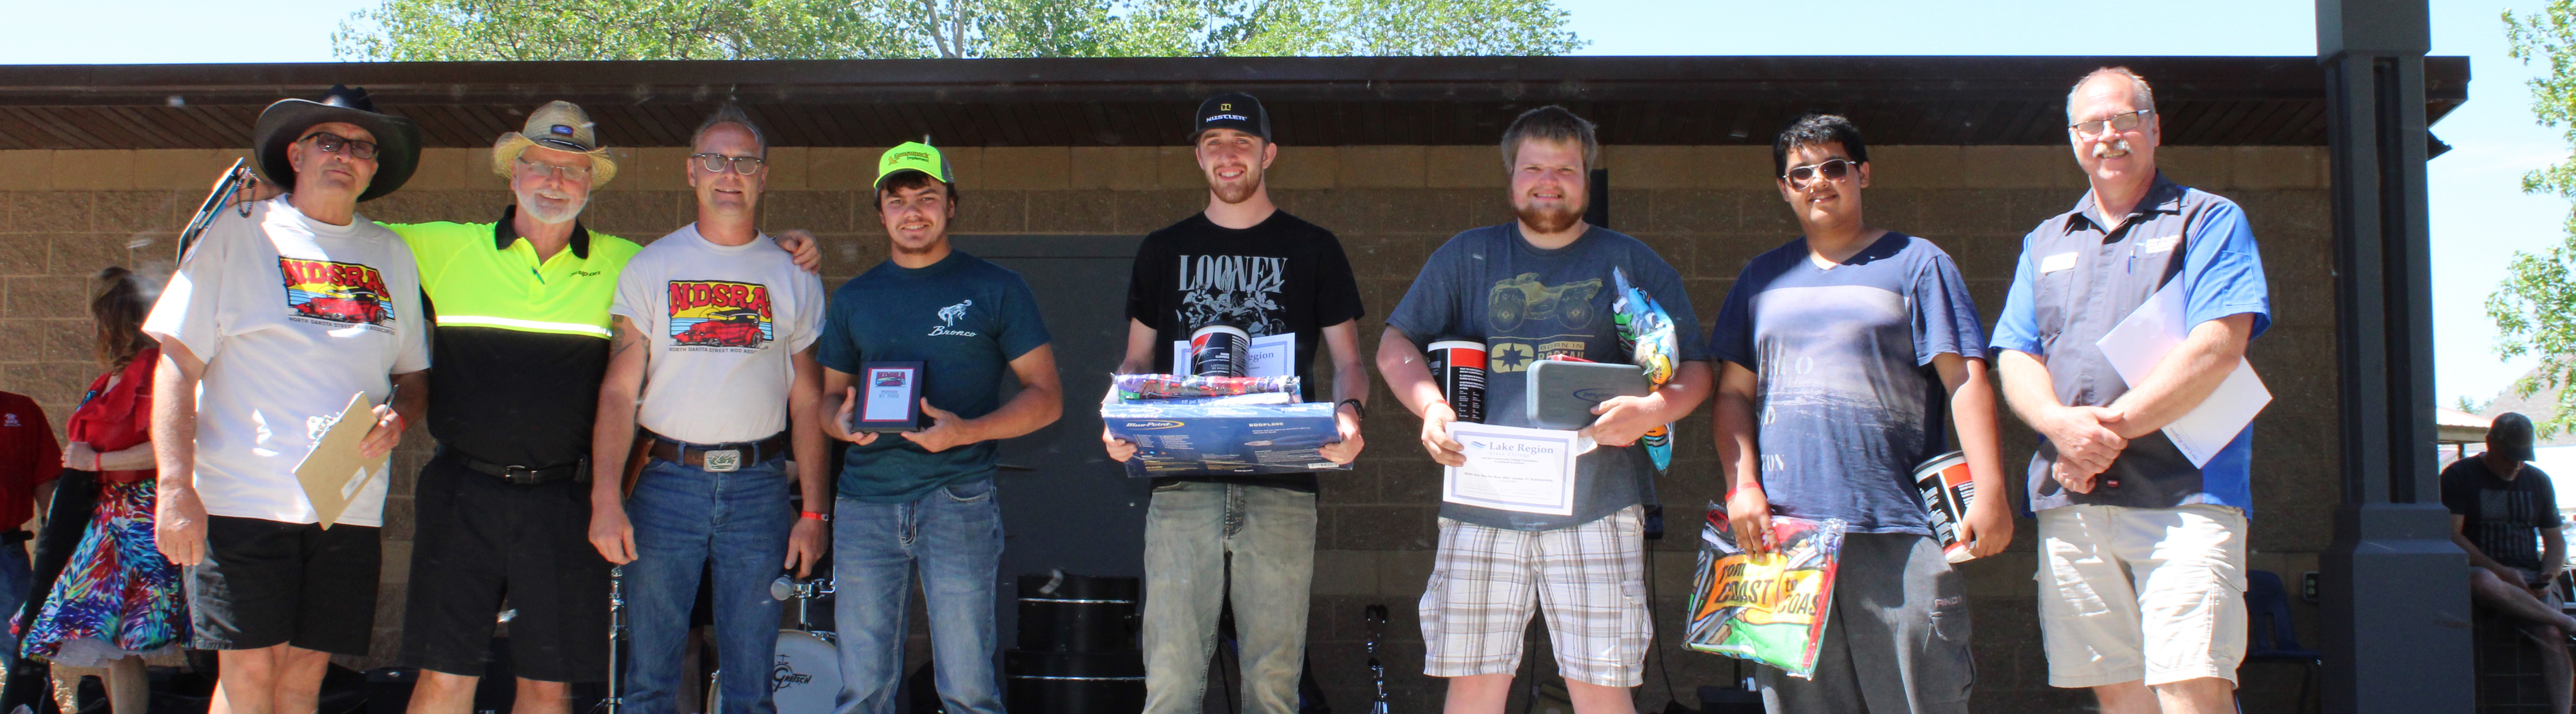 Winners and sponsors of 21 and Under contest